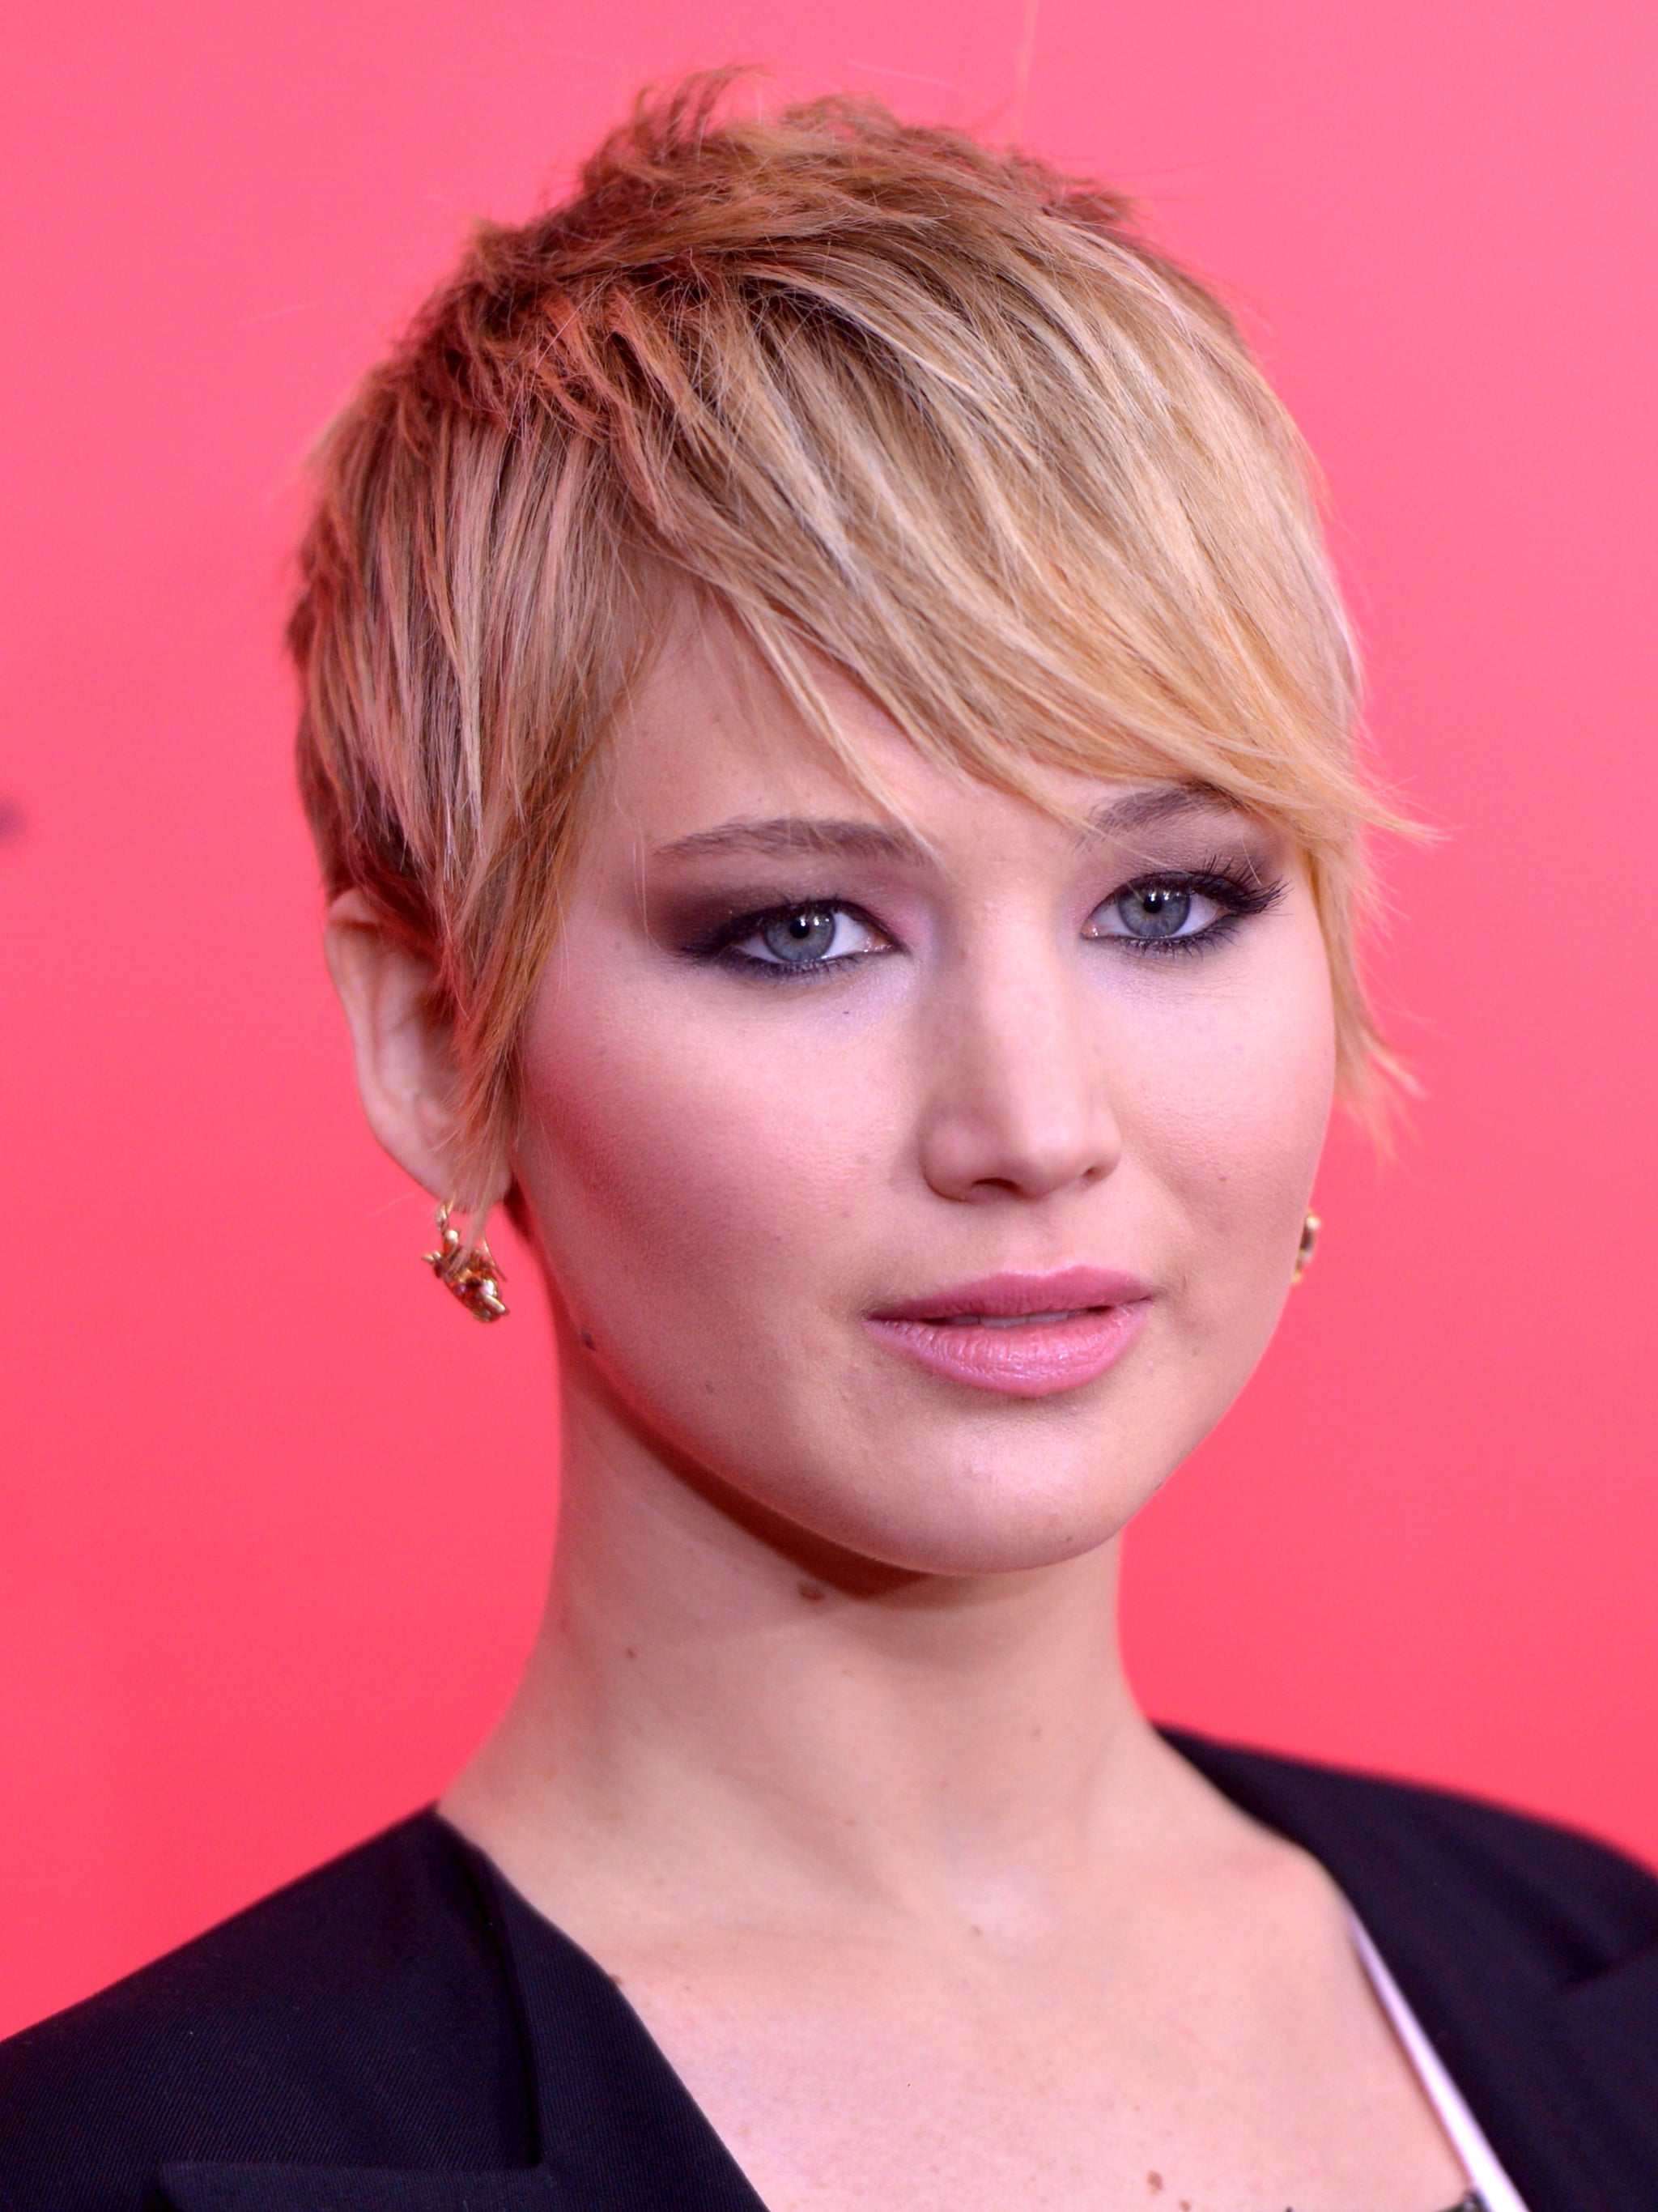 It was all about the winged-out smoky eye for Jennifer Lawrence in New York, and her pixie was styled in a sleek side bang with flipped-out ends.